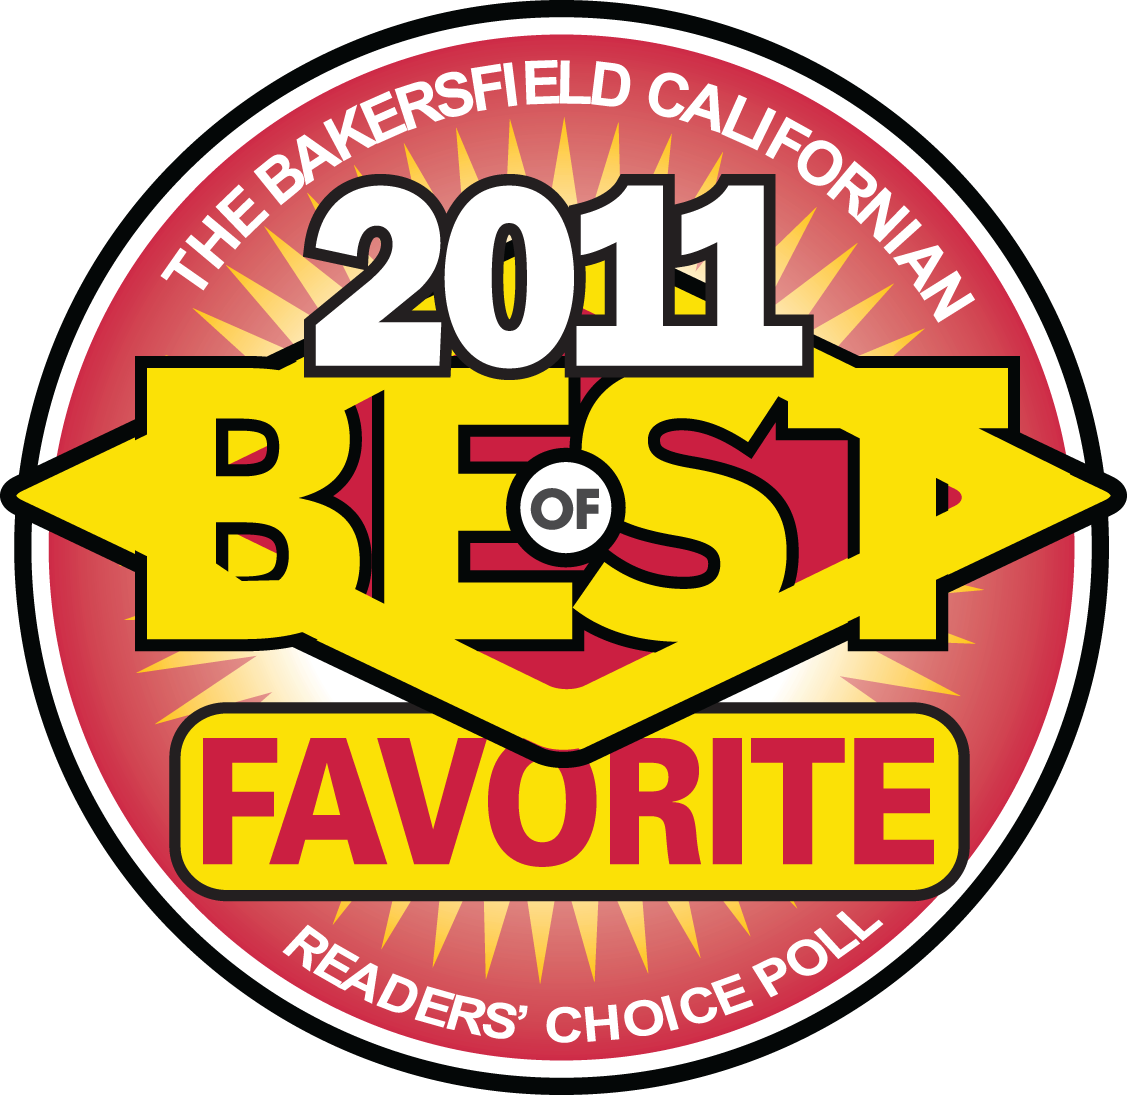 Best Favorite 2011 logo